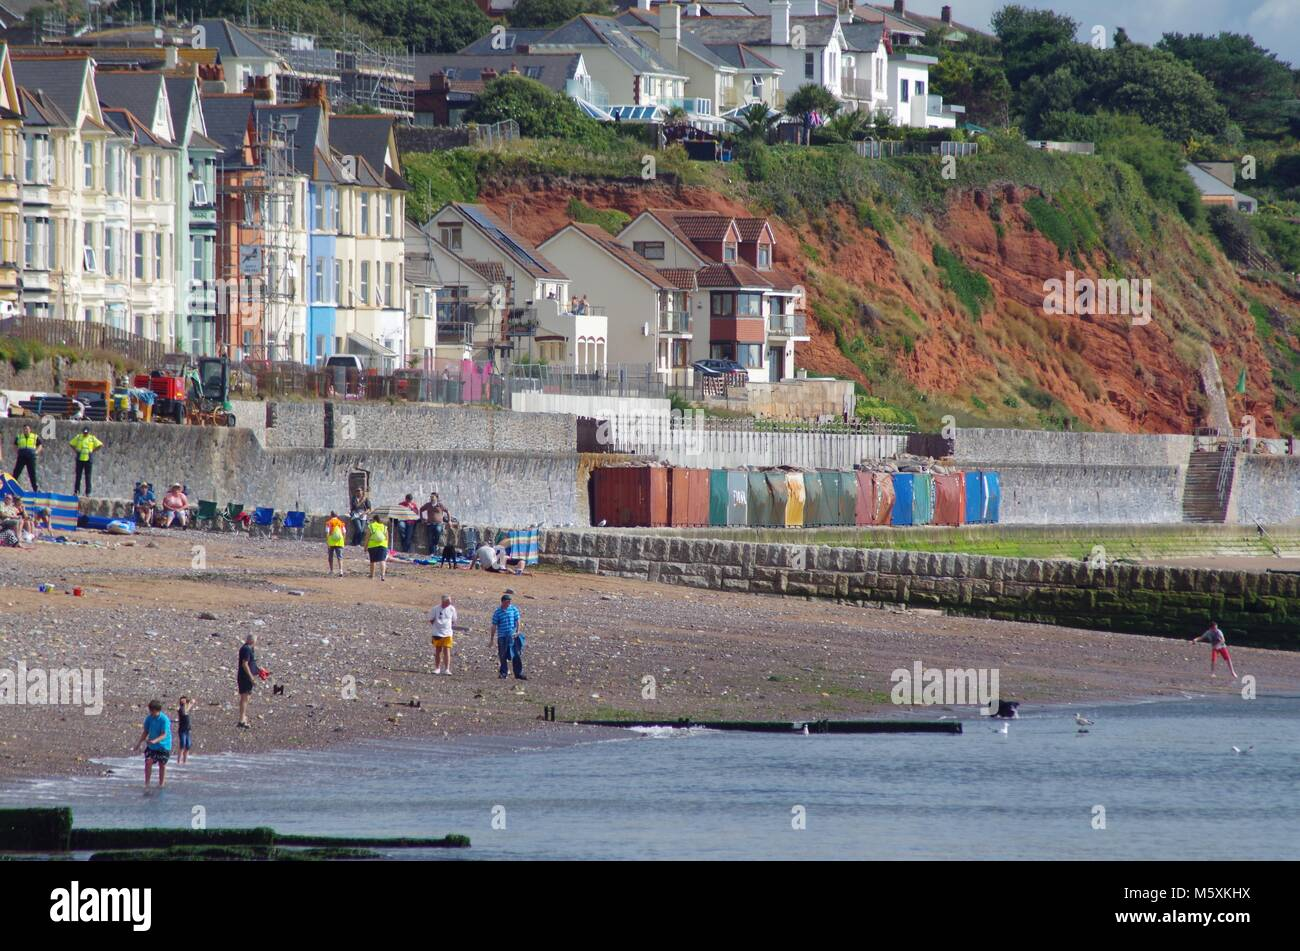 Repair Work on the Dawlish Riviera Line, Railway, after The Great Storm of 5th Feb 2014. Network Infrastructure - Stock Image